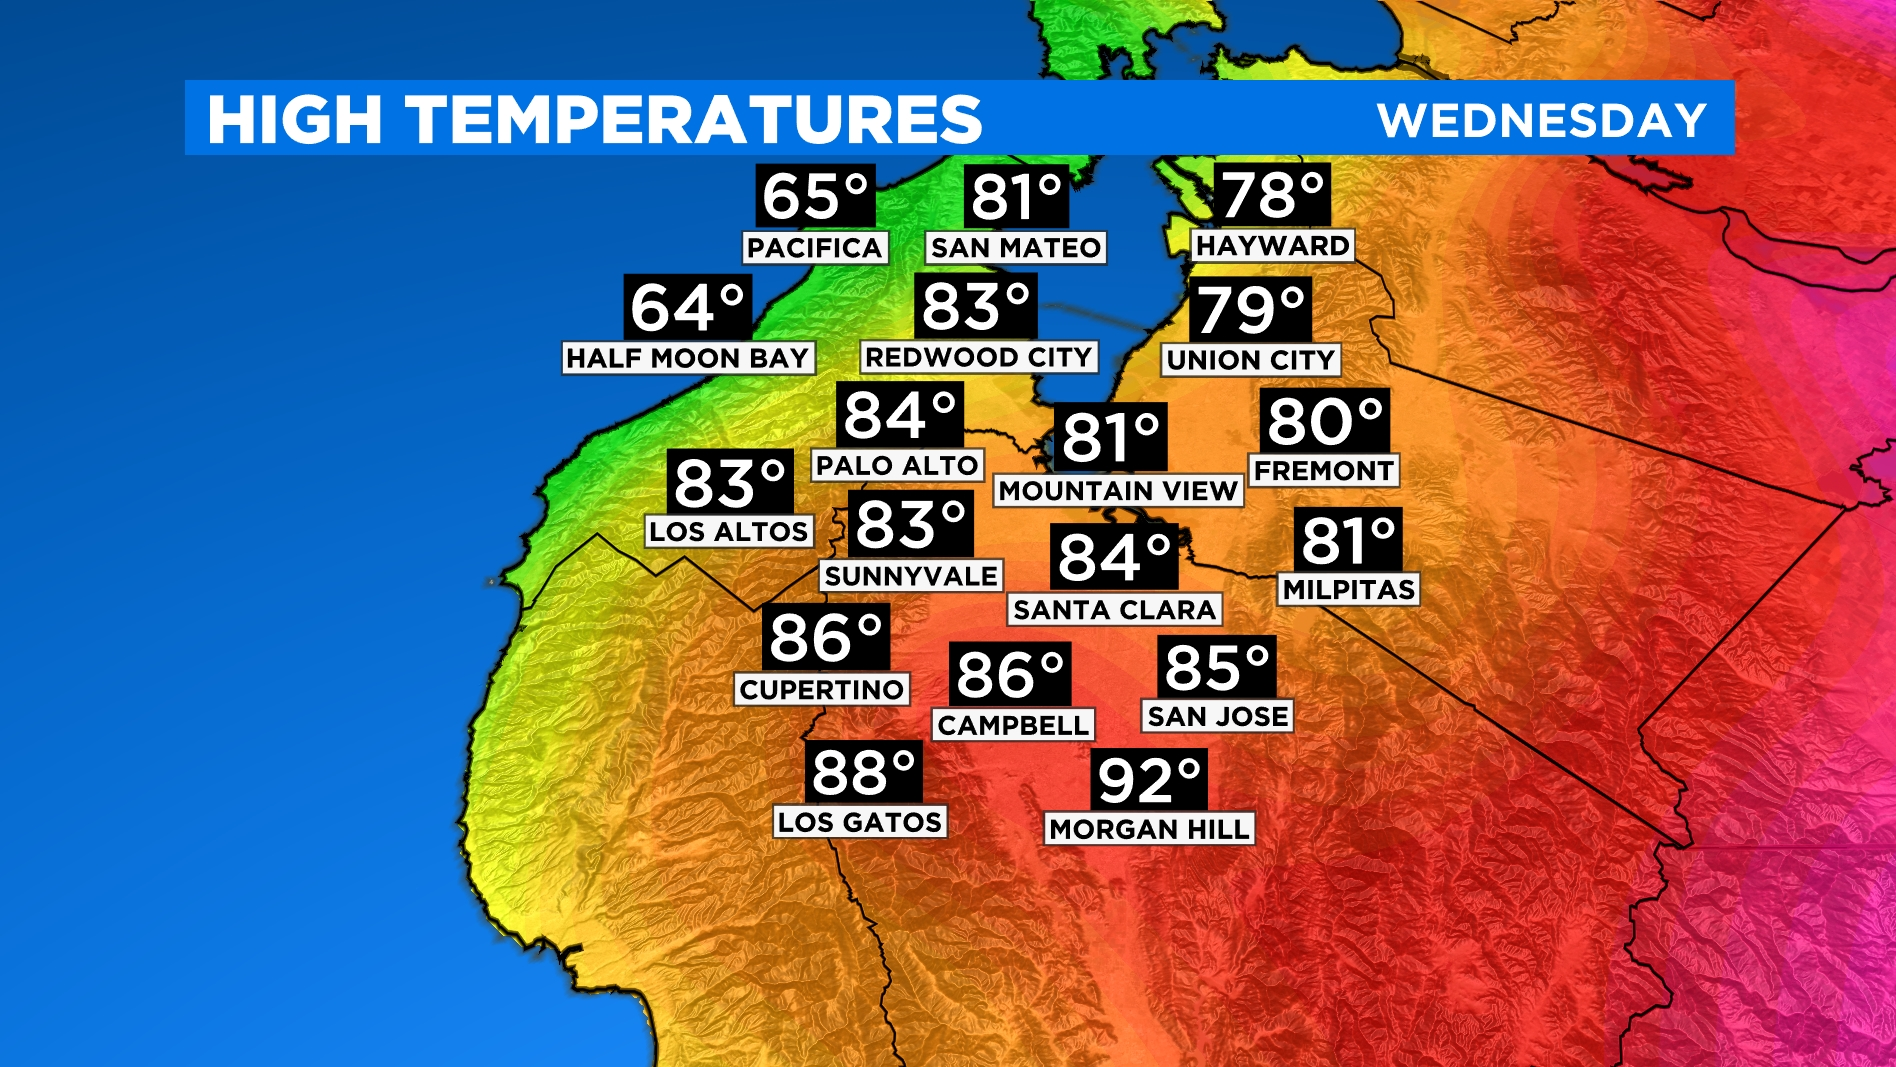 SOUTH BAY HIGHS large South Bay Temp Forcast